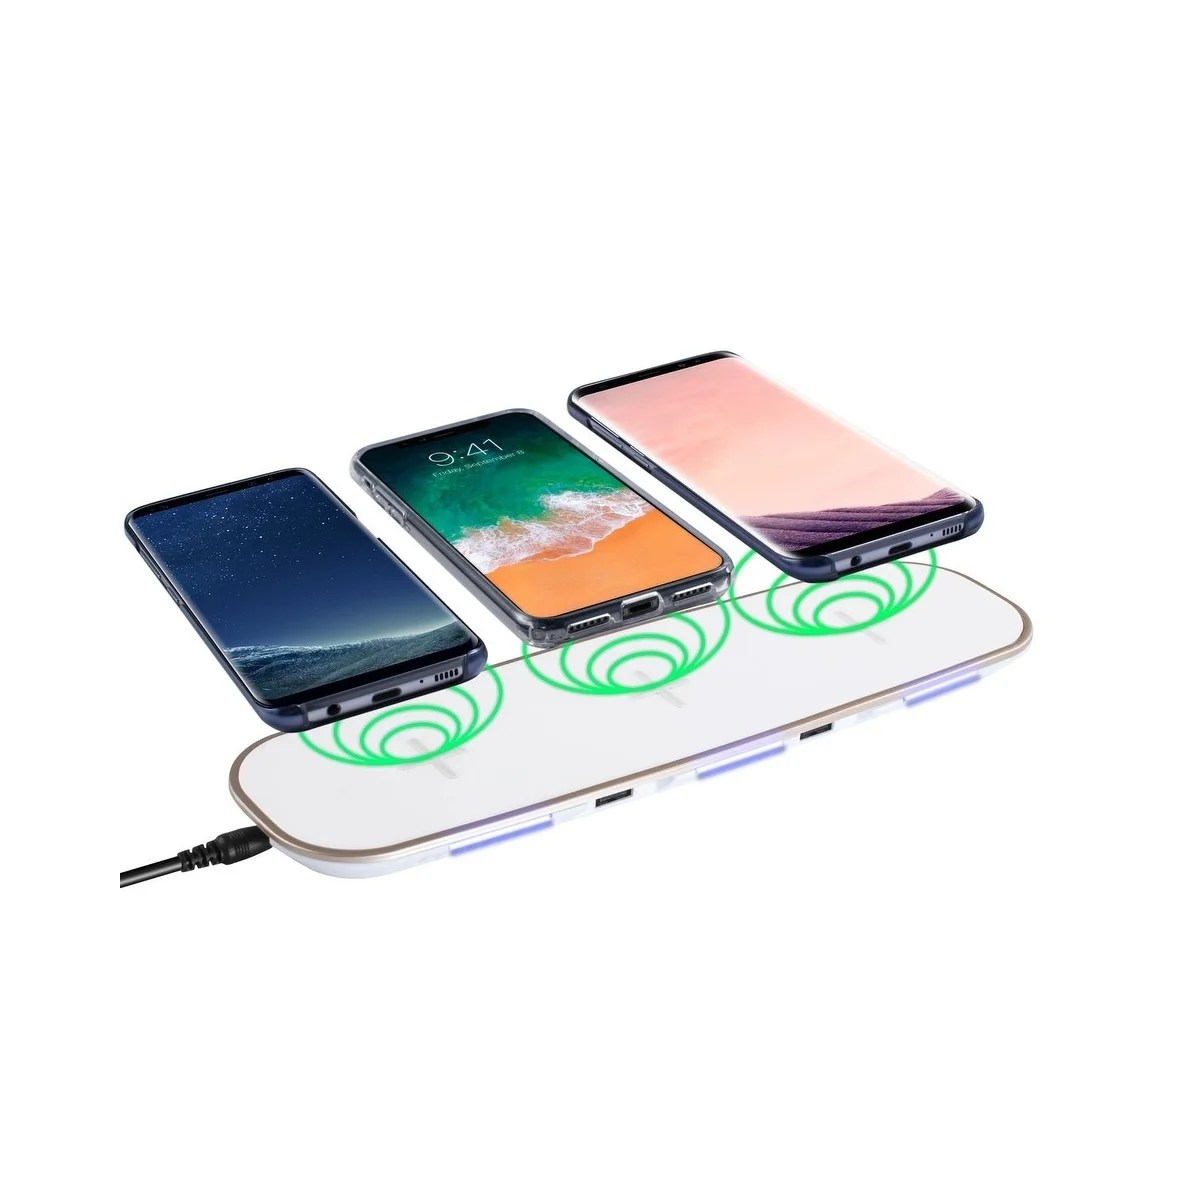 Iphone Cordless Charger Qi Wireless Charger Insten 3 In 1 Wireless Charging Pad With 2 Usb Ports For Iphone X Xr Xs Max 8 Samsung Galaxy S9 S9